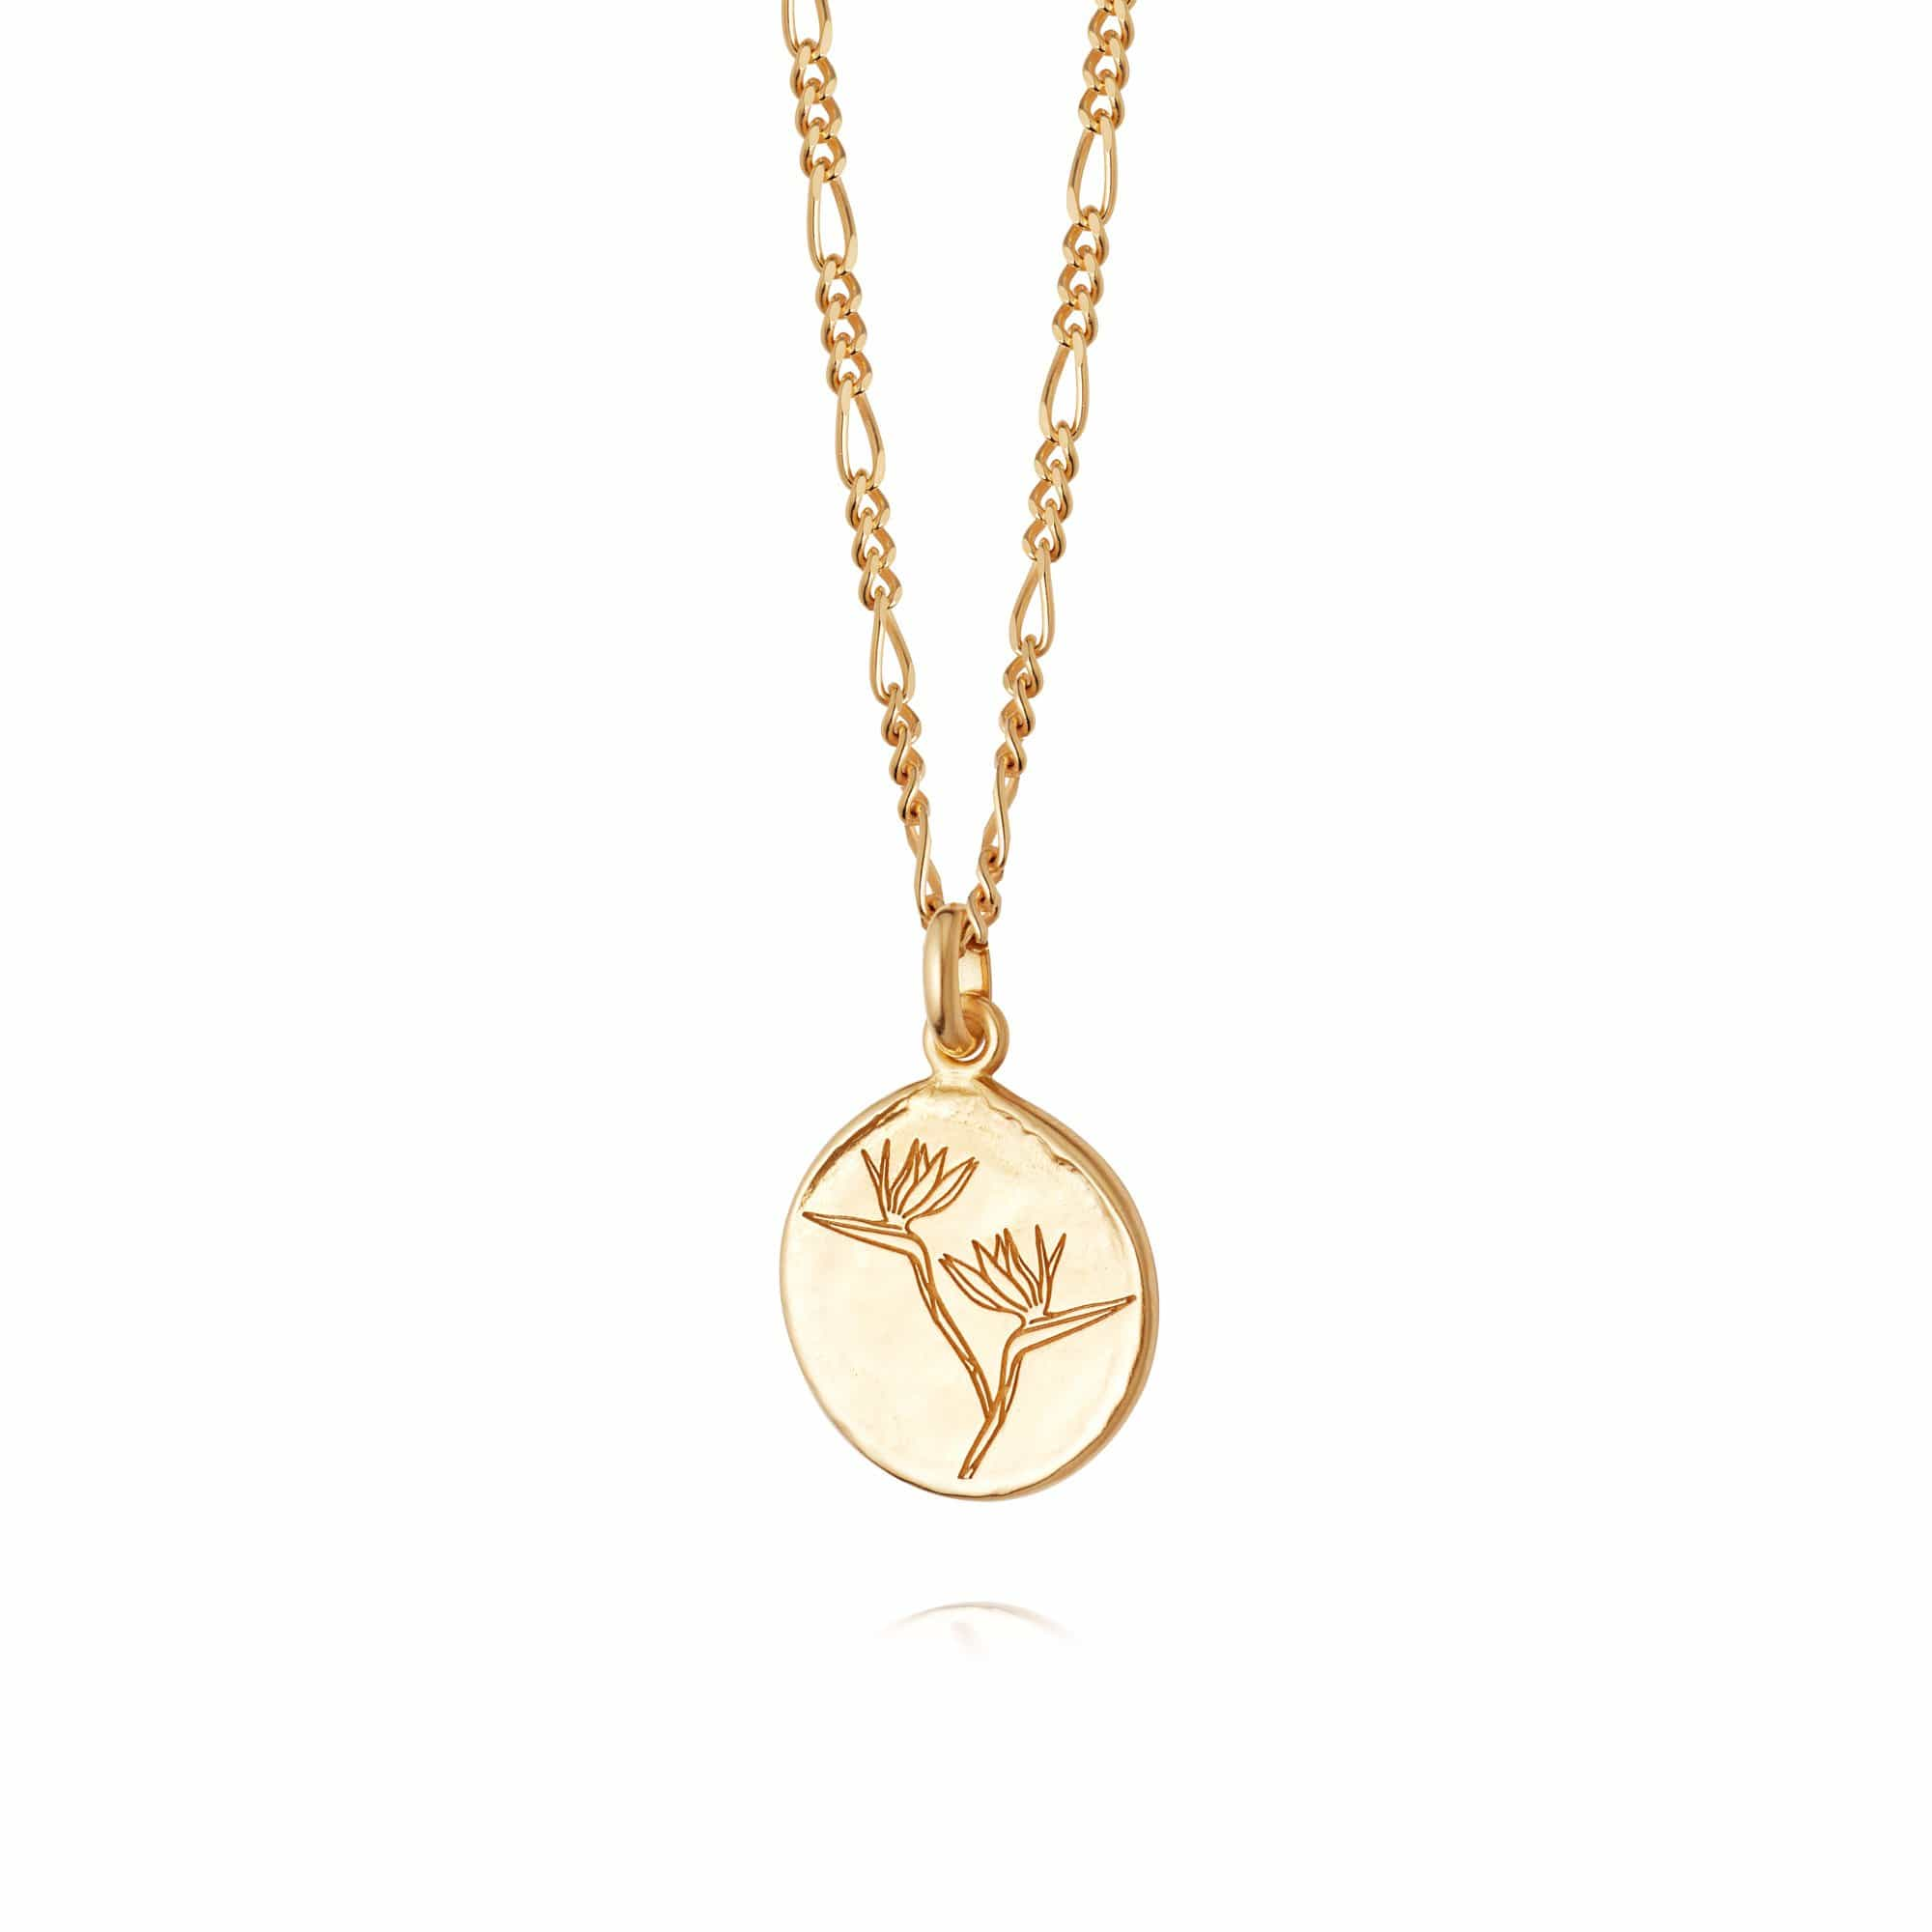 BIRD OF PARADISE FLOWER NECKLACE - 18CT GOLD PLATE